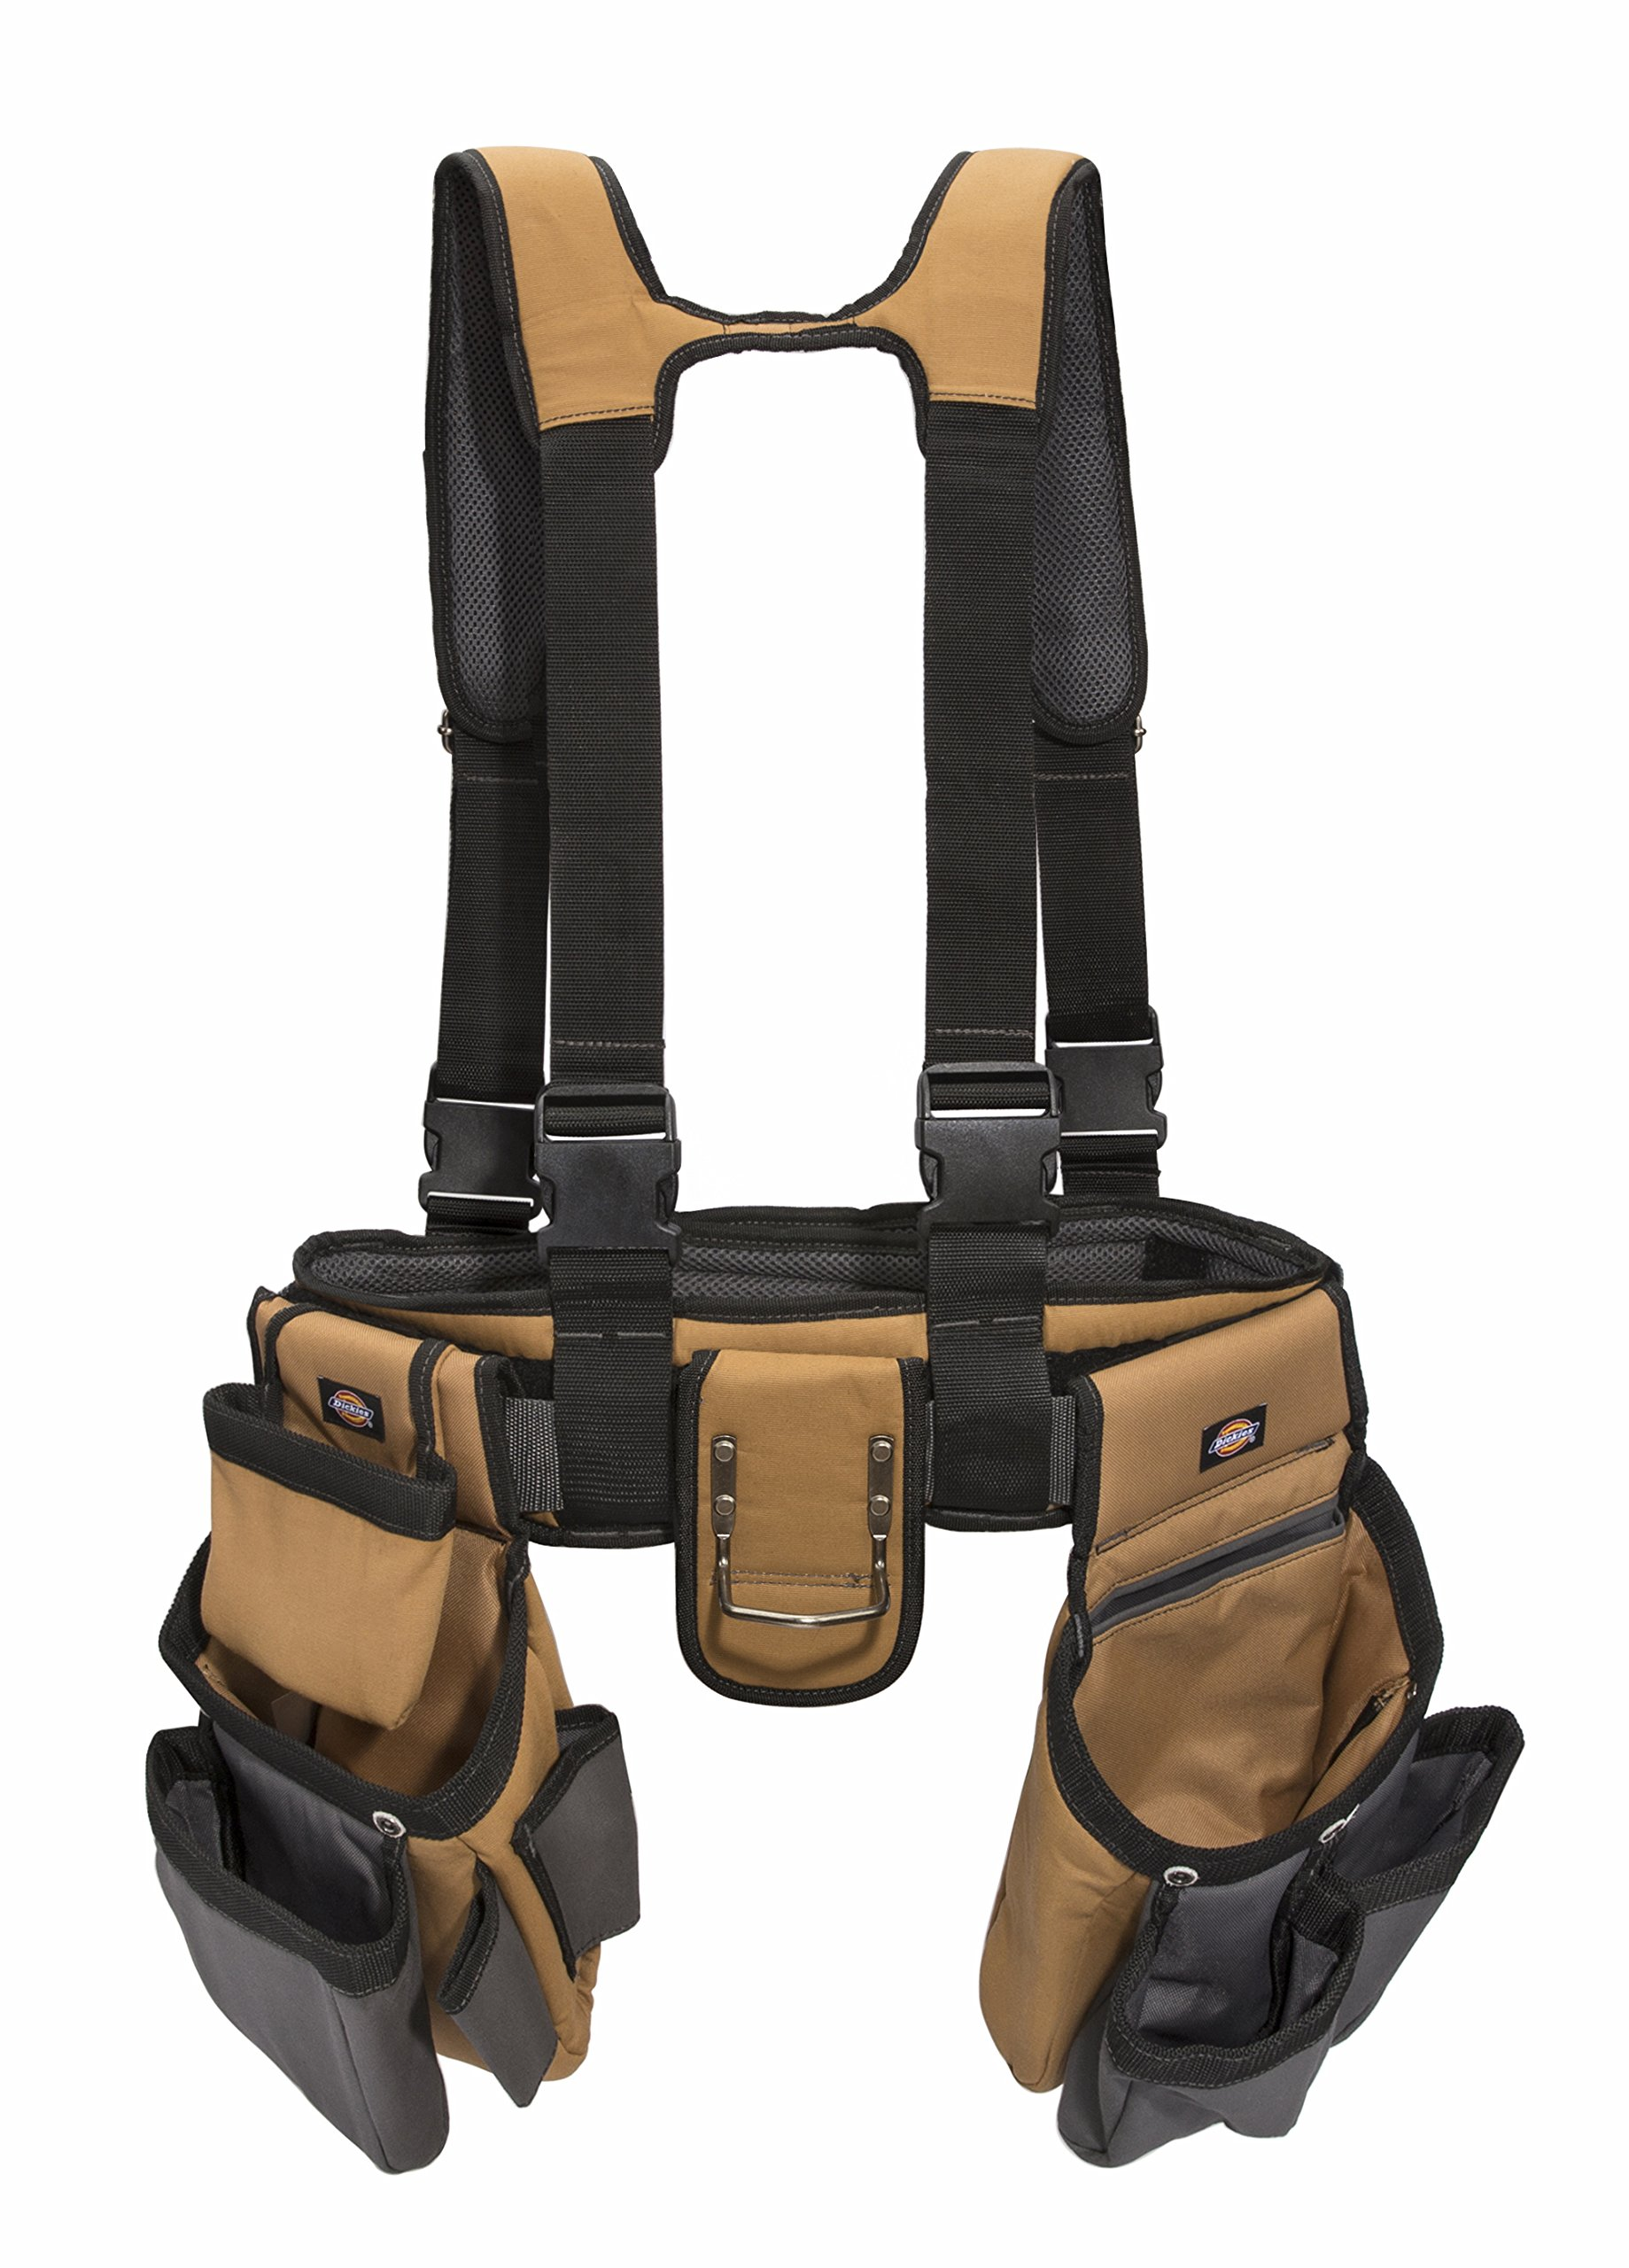 Dickies Work Gear - 4-Piece Carpenter's Rig - 57023 - Tool Belt Suspenders - Cooling Mesh - Padded Suspenders - Steel Buckle - Leather Tool Belt - Grey/Tan - 3.8 lb. by Dickies Work Gear